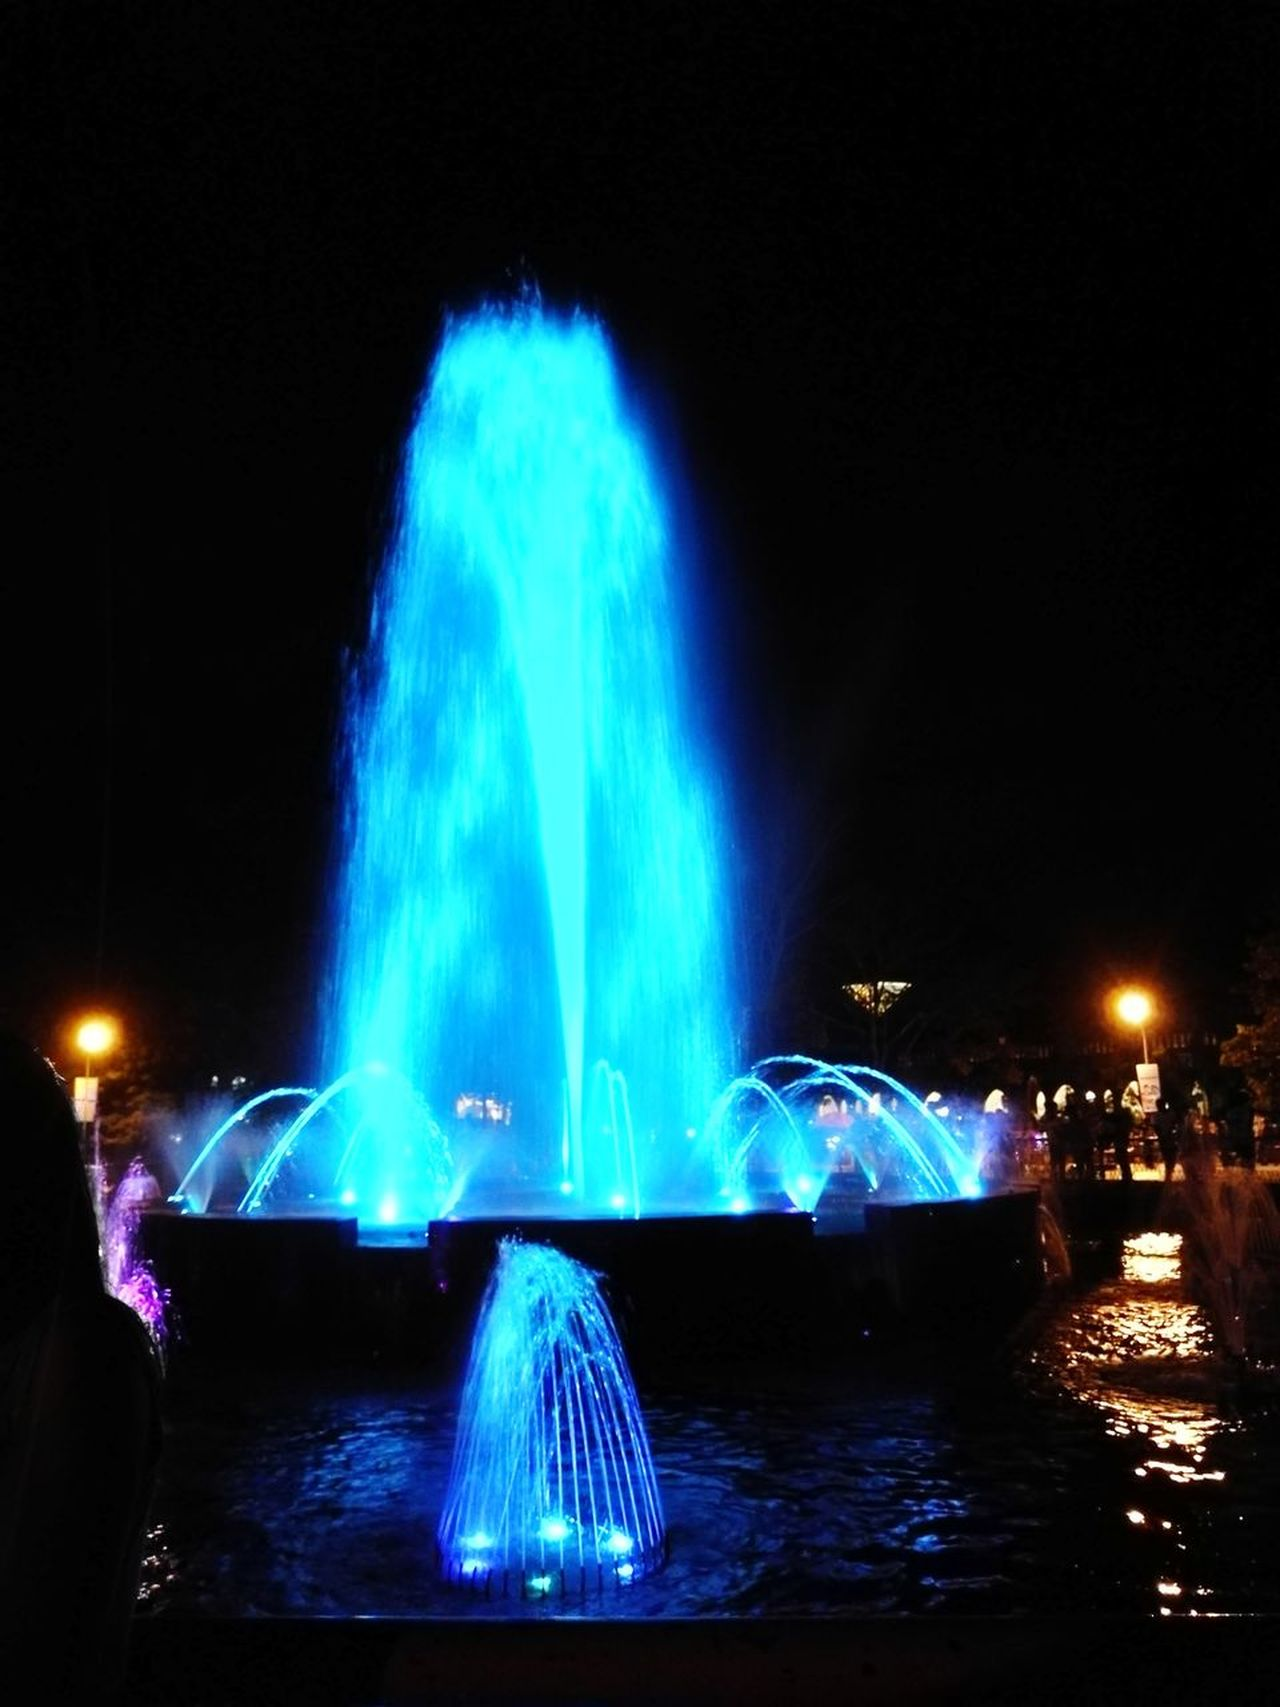 Water Motion Outdoors Night First Eyeem Photo Fountain Fun Blue Water Peaceful Moment IloveIT ♡ Lifes Good Amazed Long Exposure Arts Culture And Entertainment Illuminated Sky Nautical Vessel No People